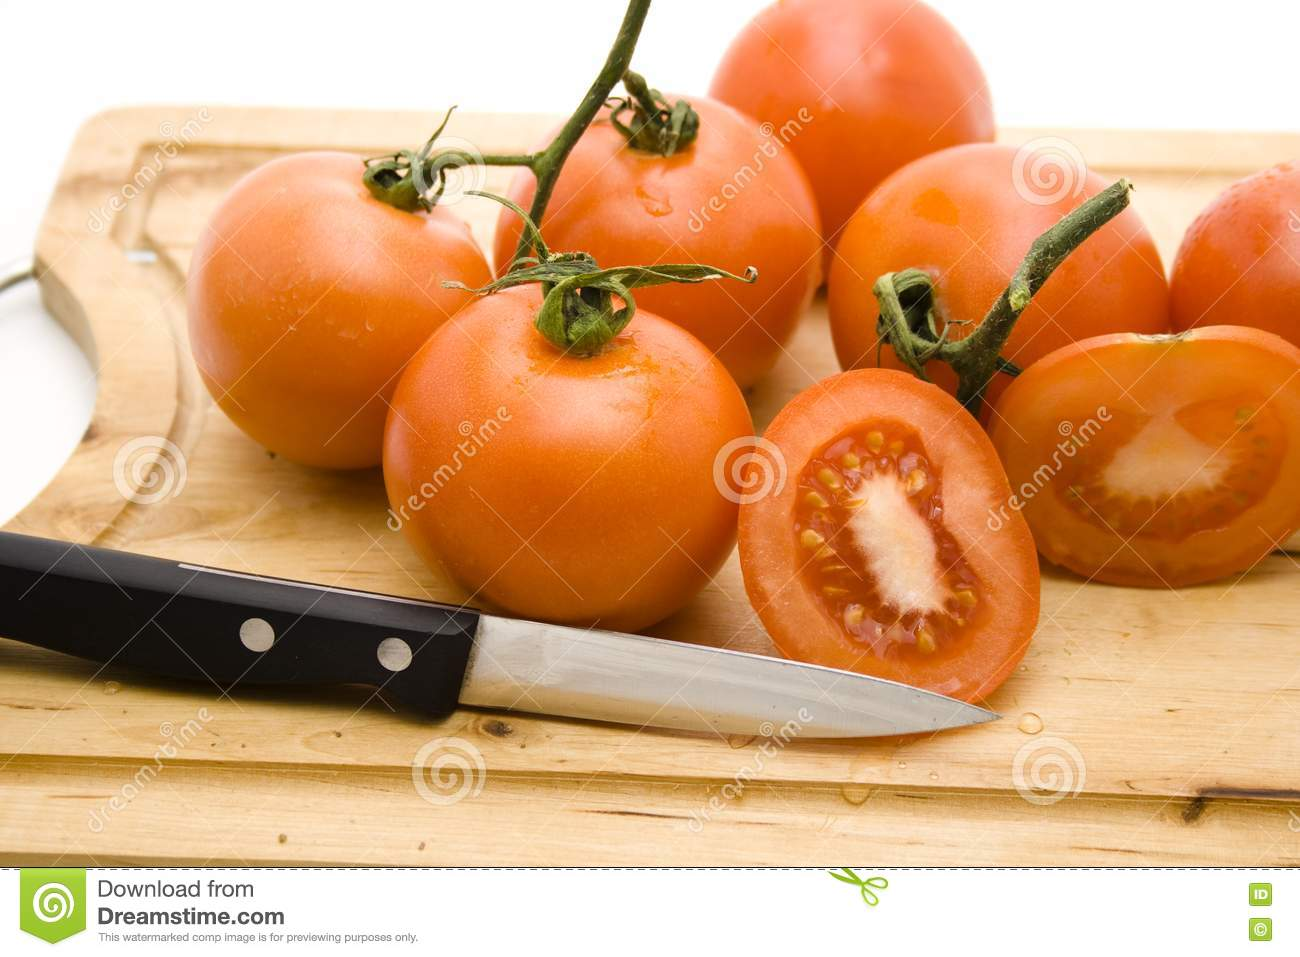 how to cut tomatoes cubes